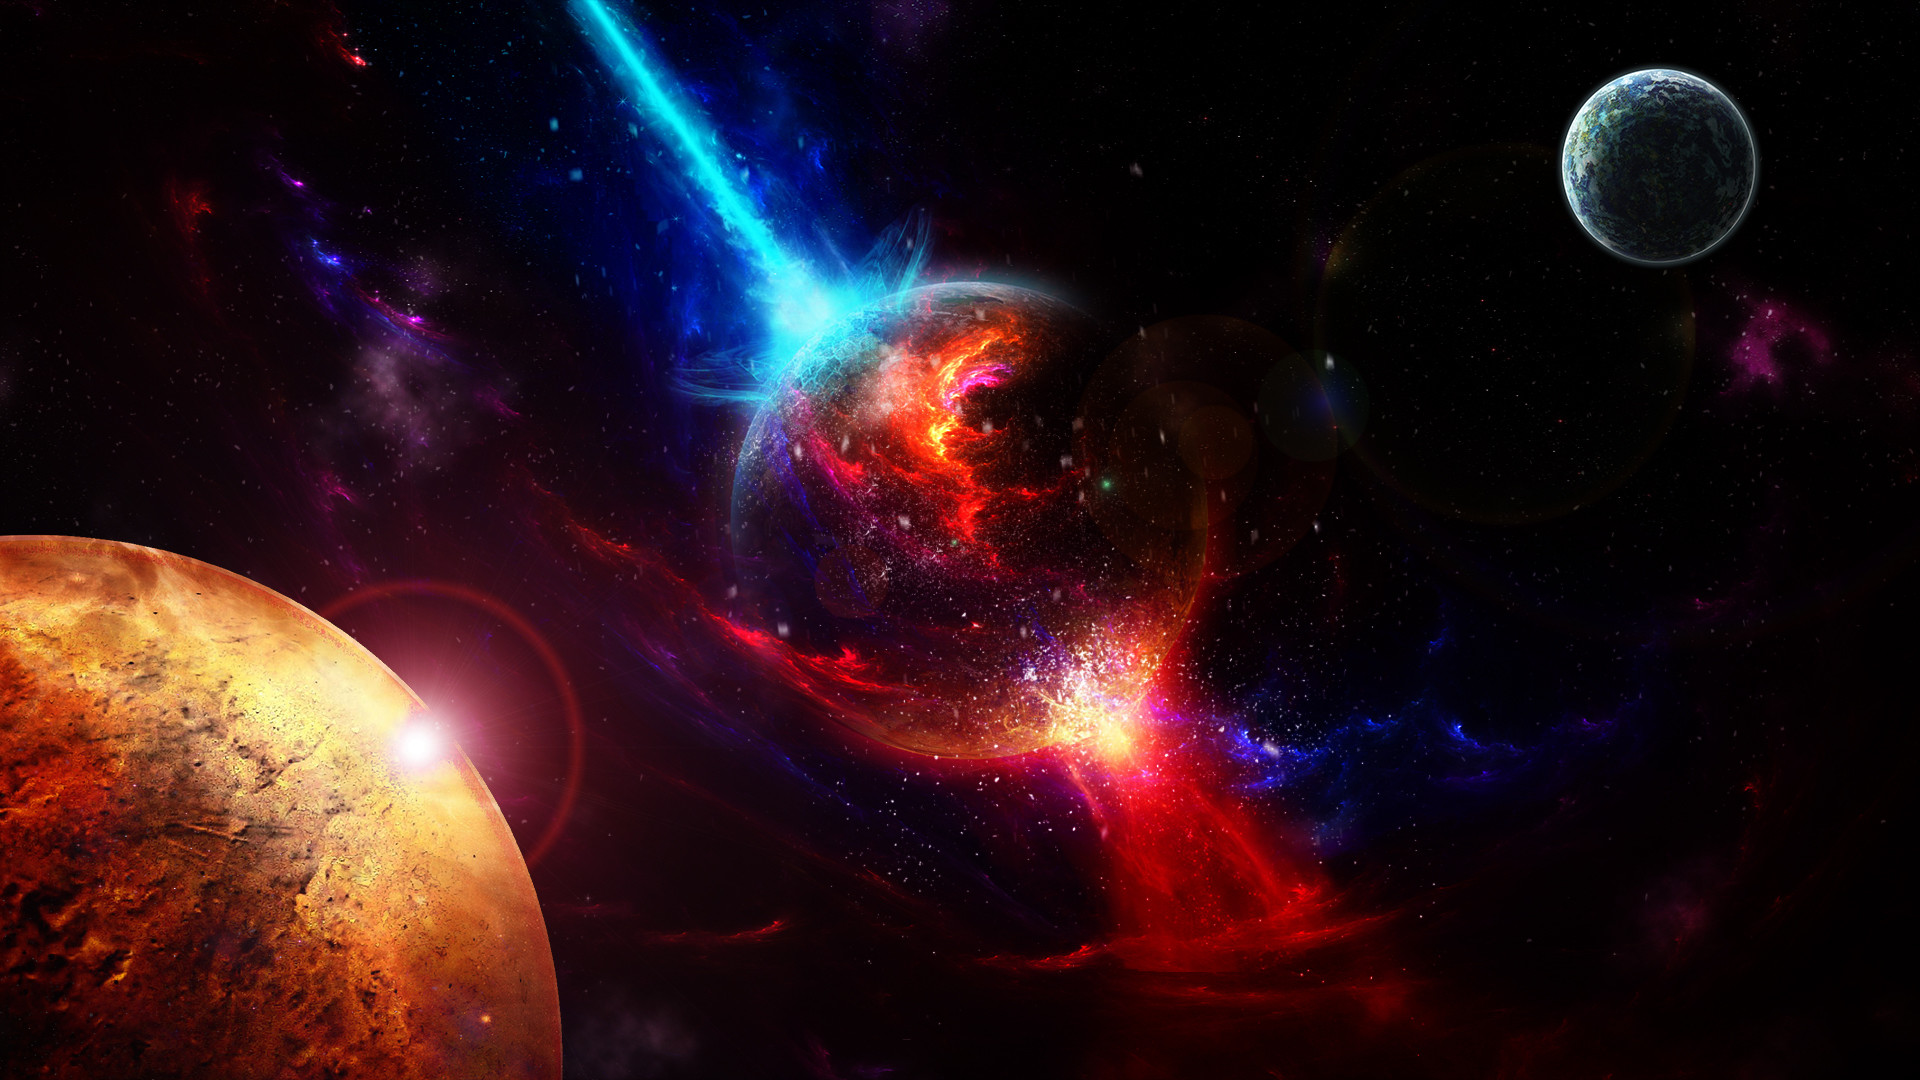 Space Wallpapers 1920x1080 Full Hd Aoutos Hd Wallpapers